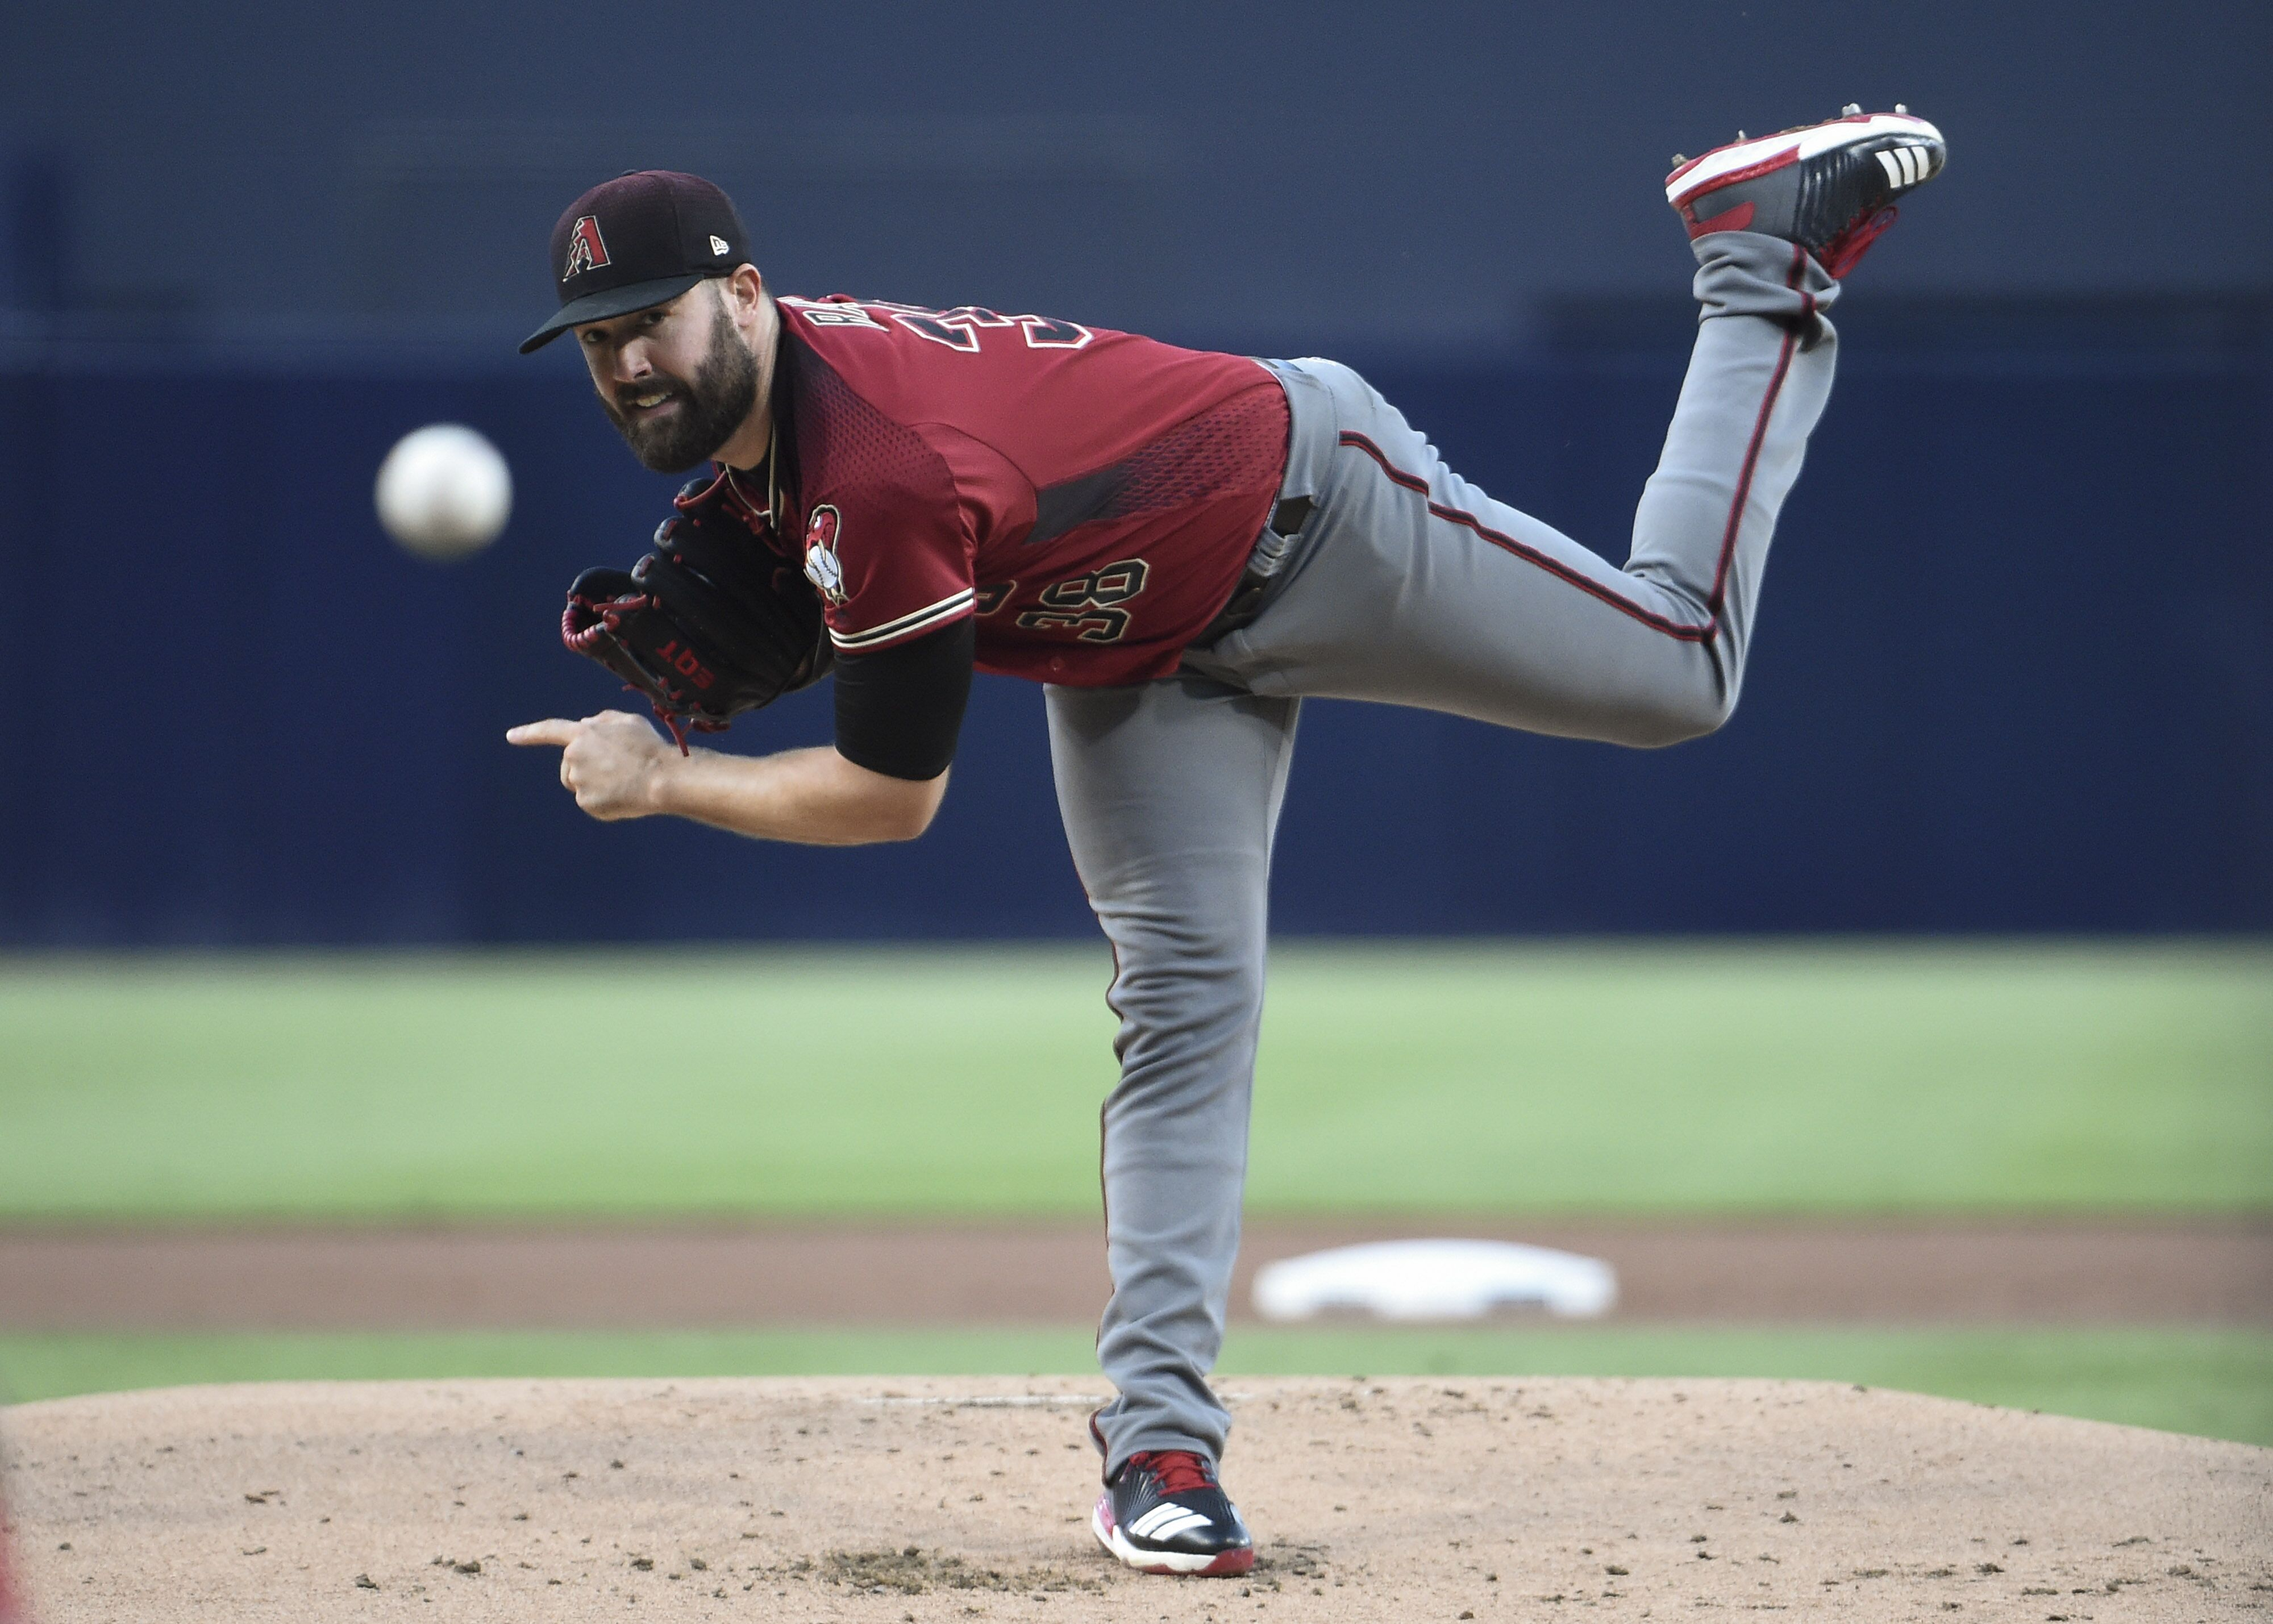 850353996-arizona-diamondbacks-v-san-diego-padres.jpg